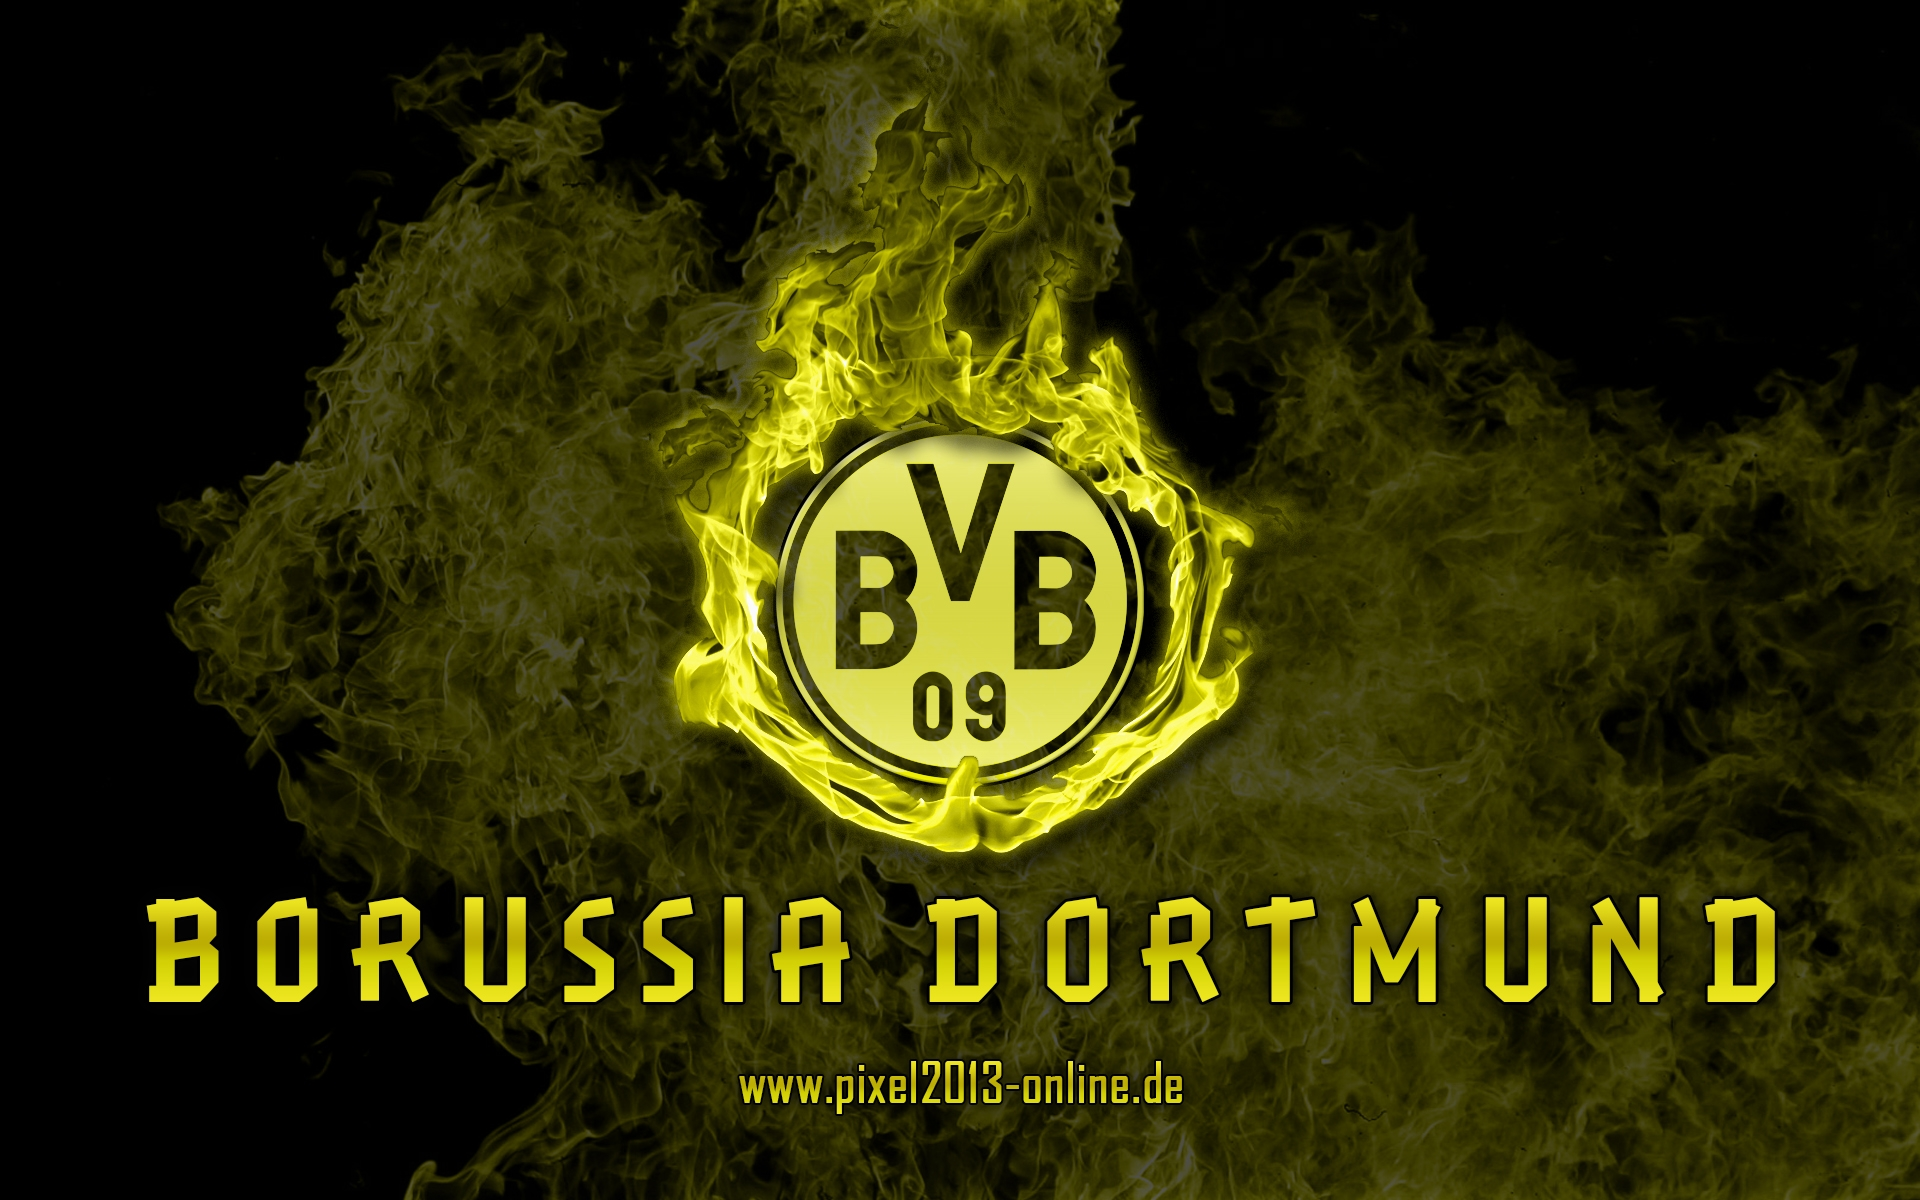 borussia dortmund wallpaper